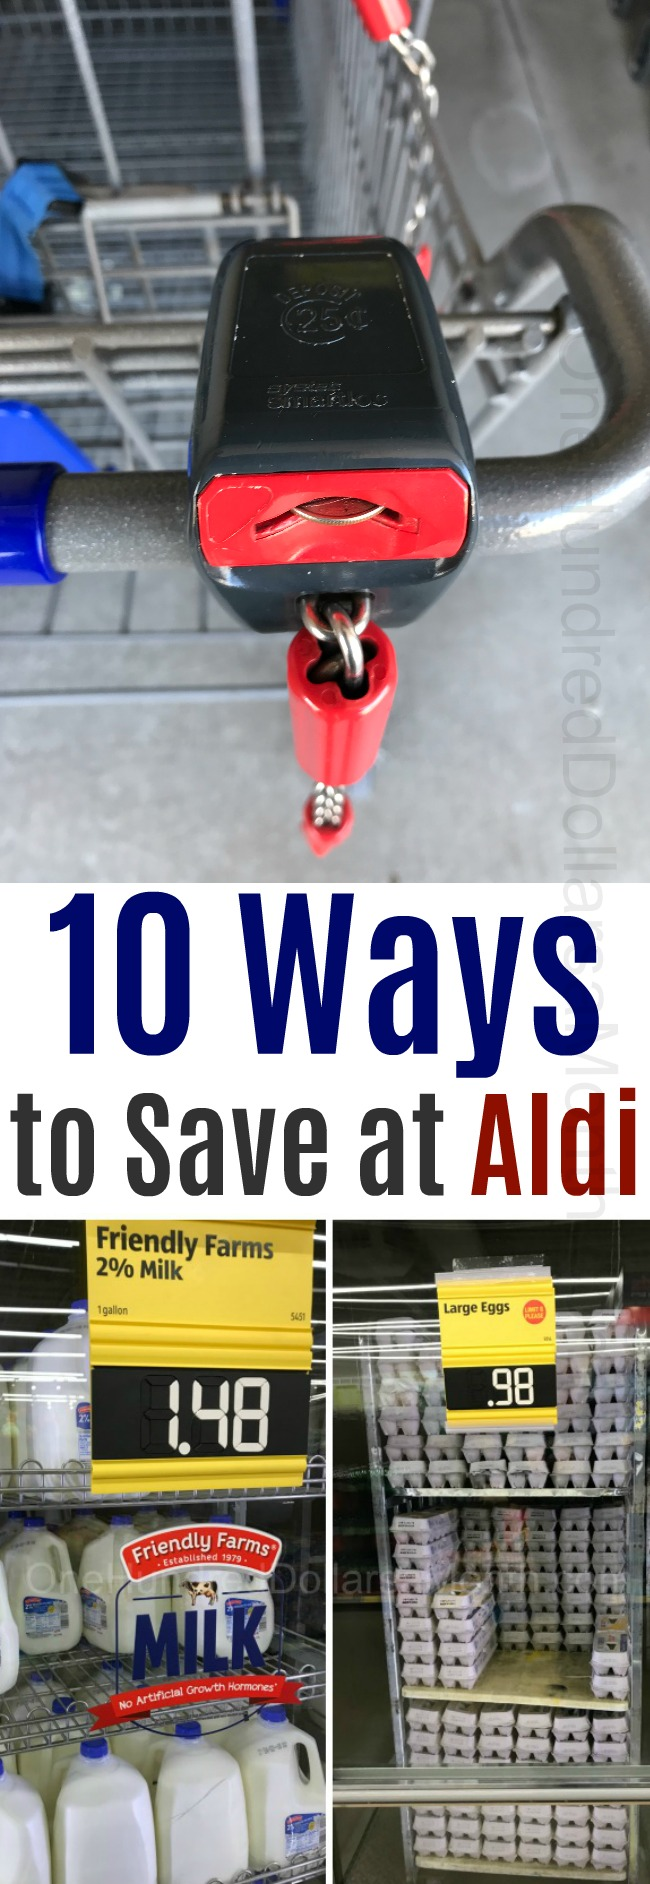 10 Ways to Save at Aldi